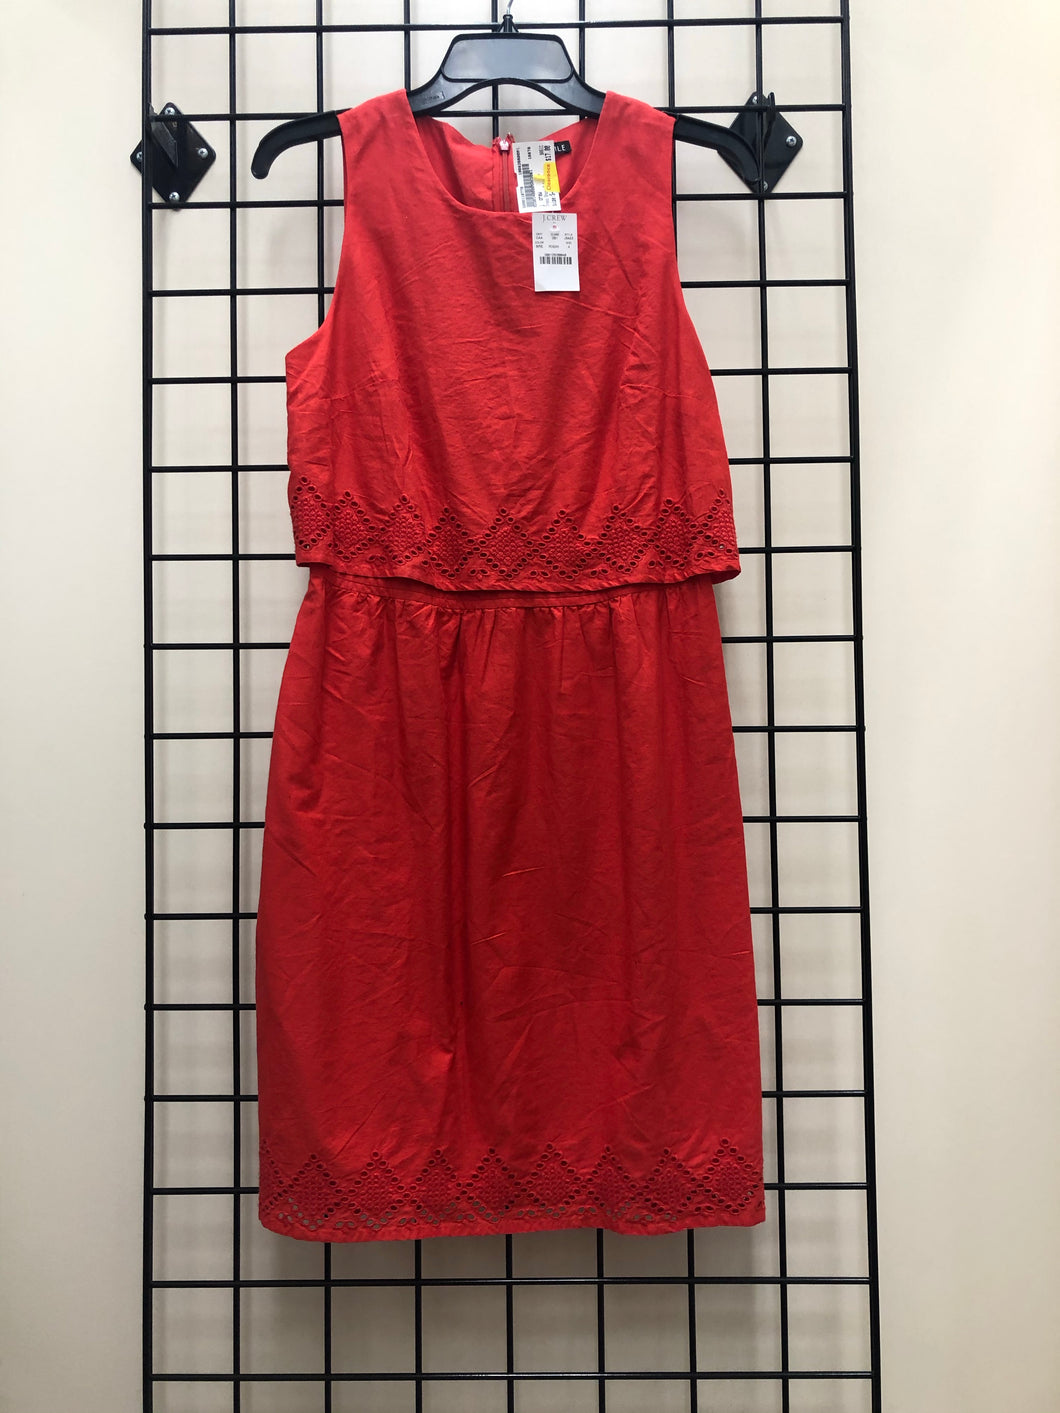 J Crew dress SIZE SMALL